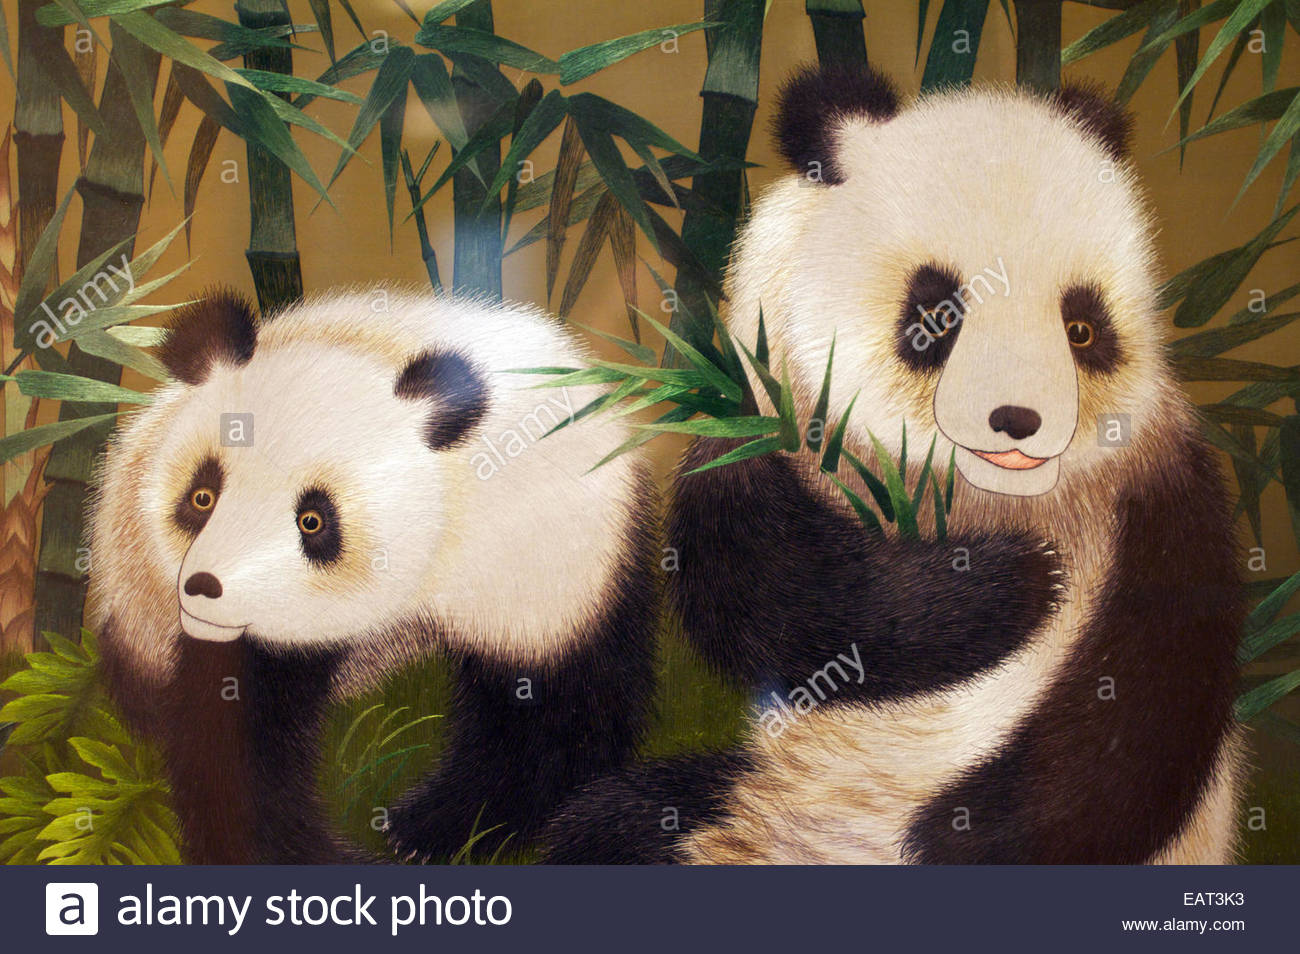 Giant Pandas depicted in a painting, Hong Kong Museum of History. - Stock Image